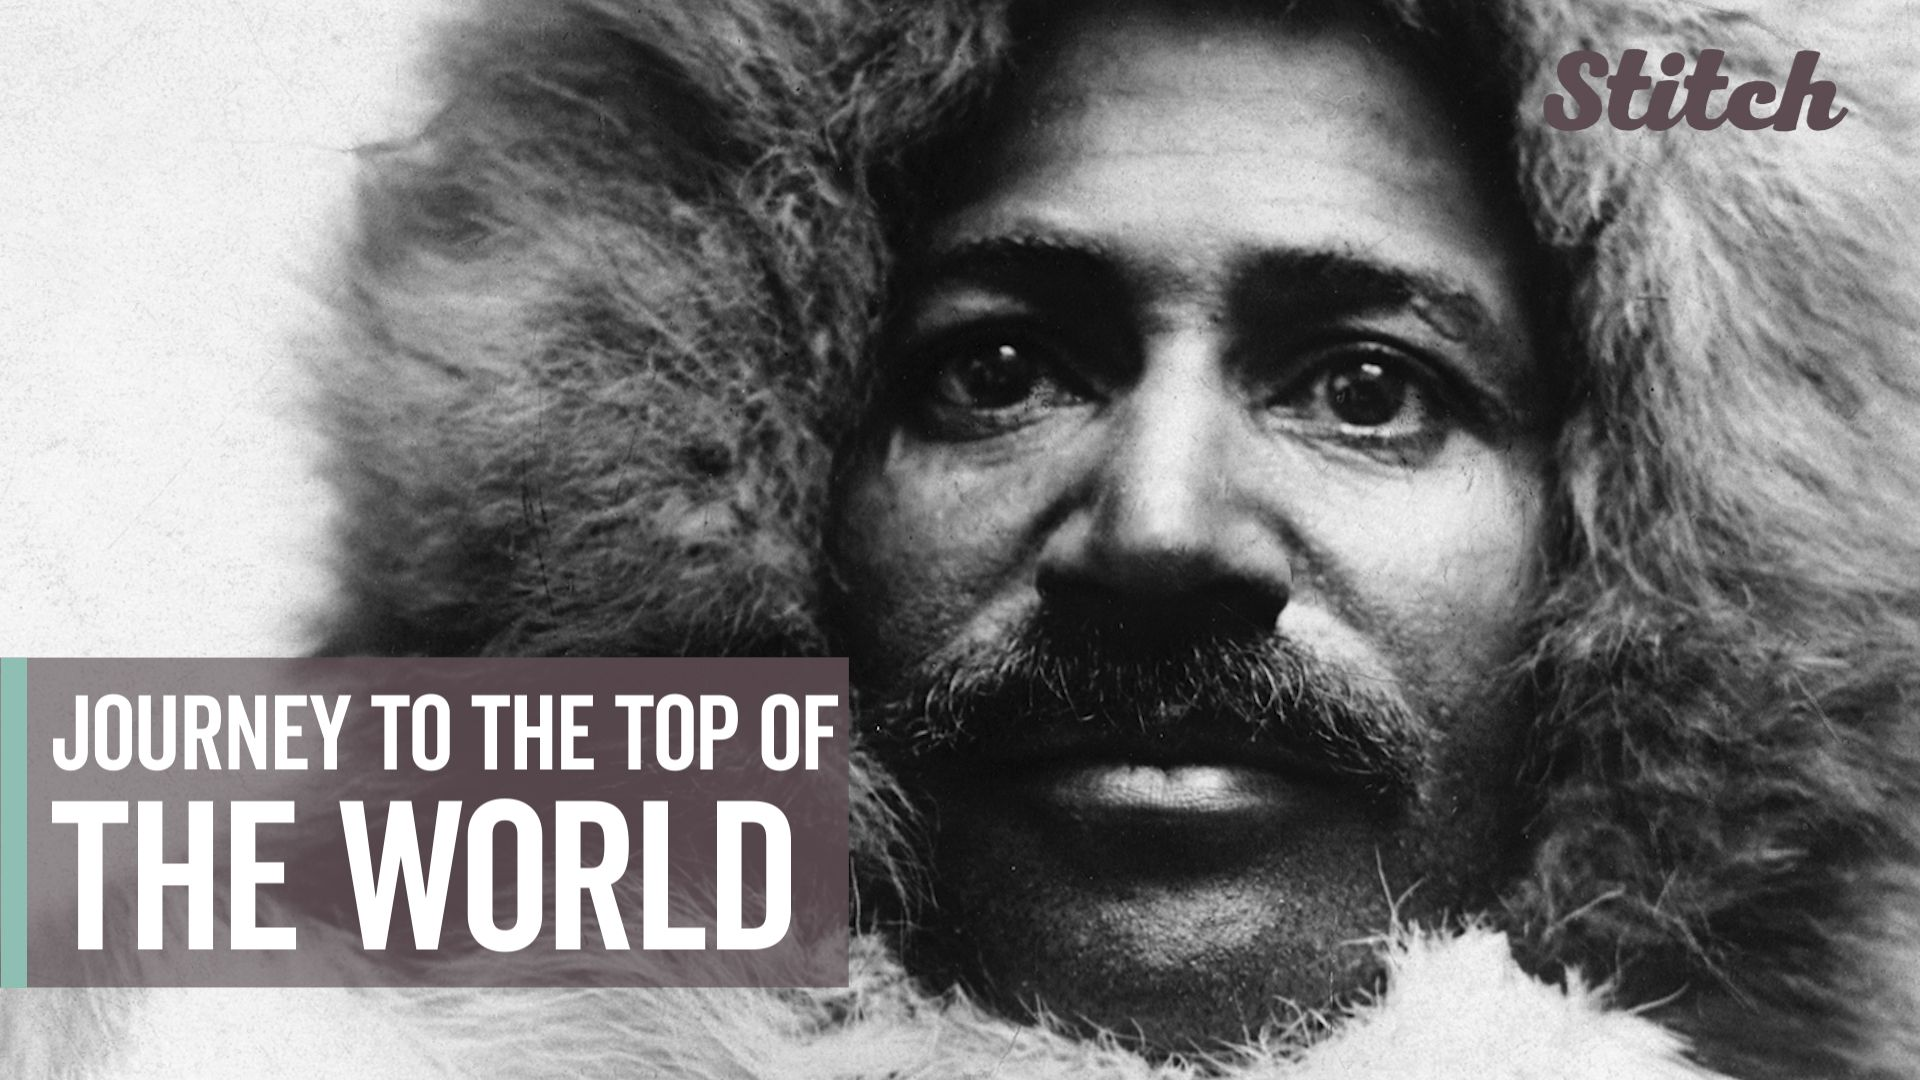 Matthew Henson Was The First African American Explorer To Reach North Pole